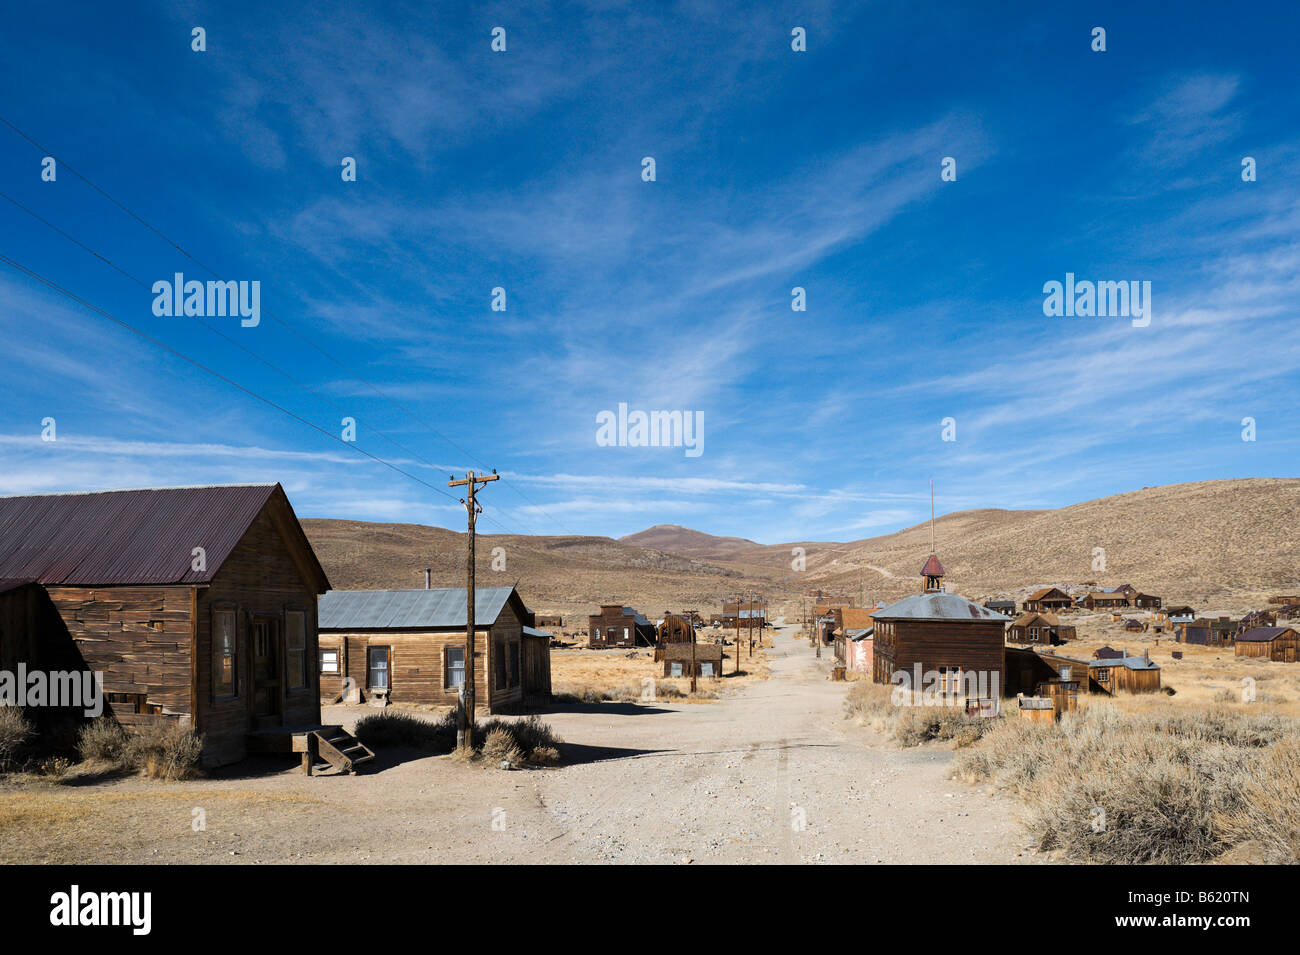 Green Street in the 19thC gold mining ghost town of Bodie, near Bridgeport, Sierra Nevada Mountains, California, Stock Photo